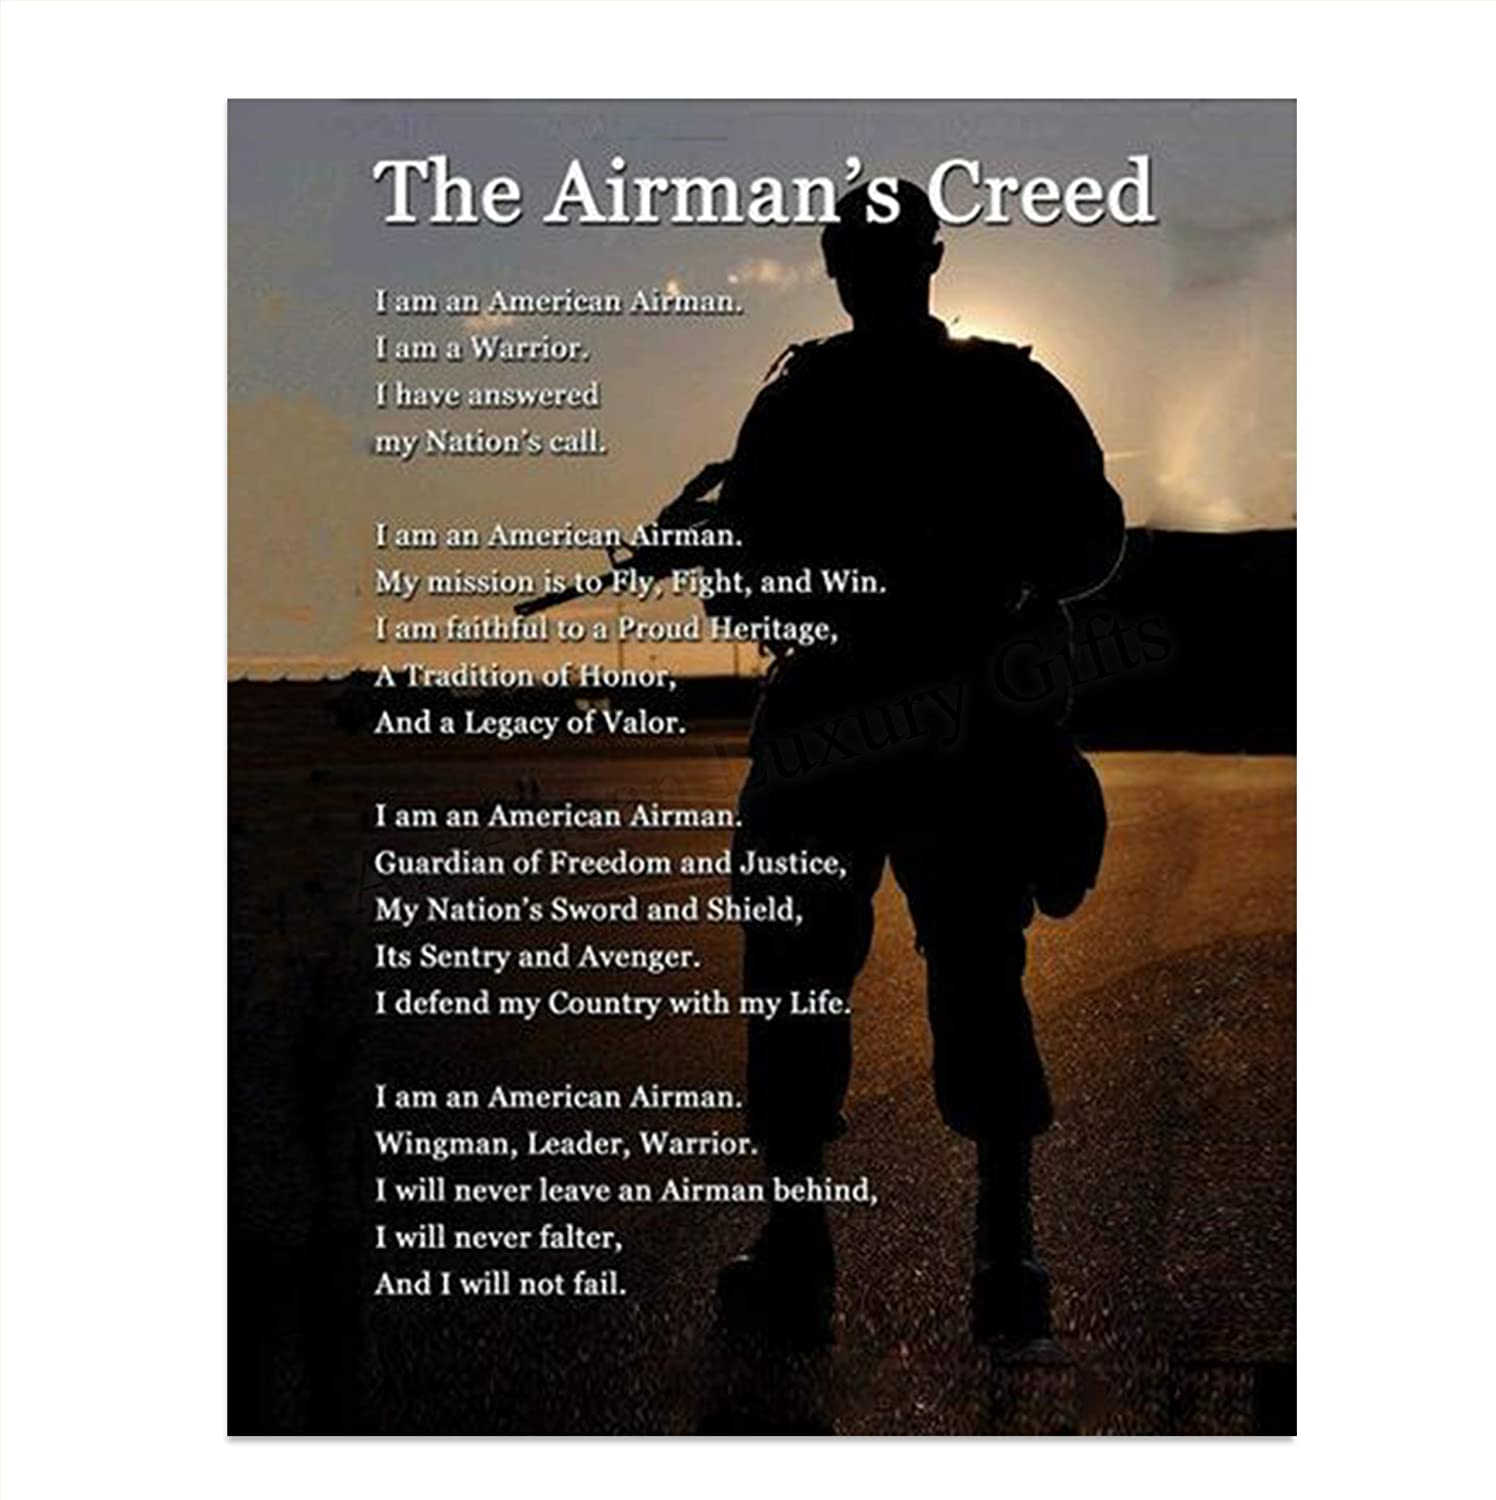 """The Airman's Creed"" Wall Art- 8 x 10""- Wall Prints- Ready To Frame. US Air Force- American Airman, Warrior, Wingman Poster Print. Home Decor-Office Decor-Military Decor. Display Your Honor & Pride."